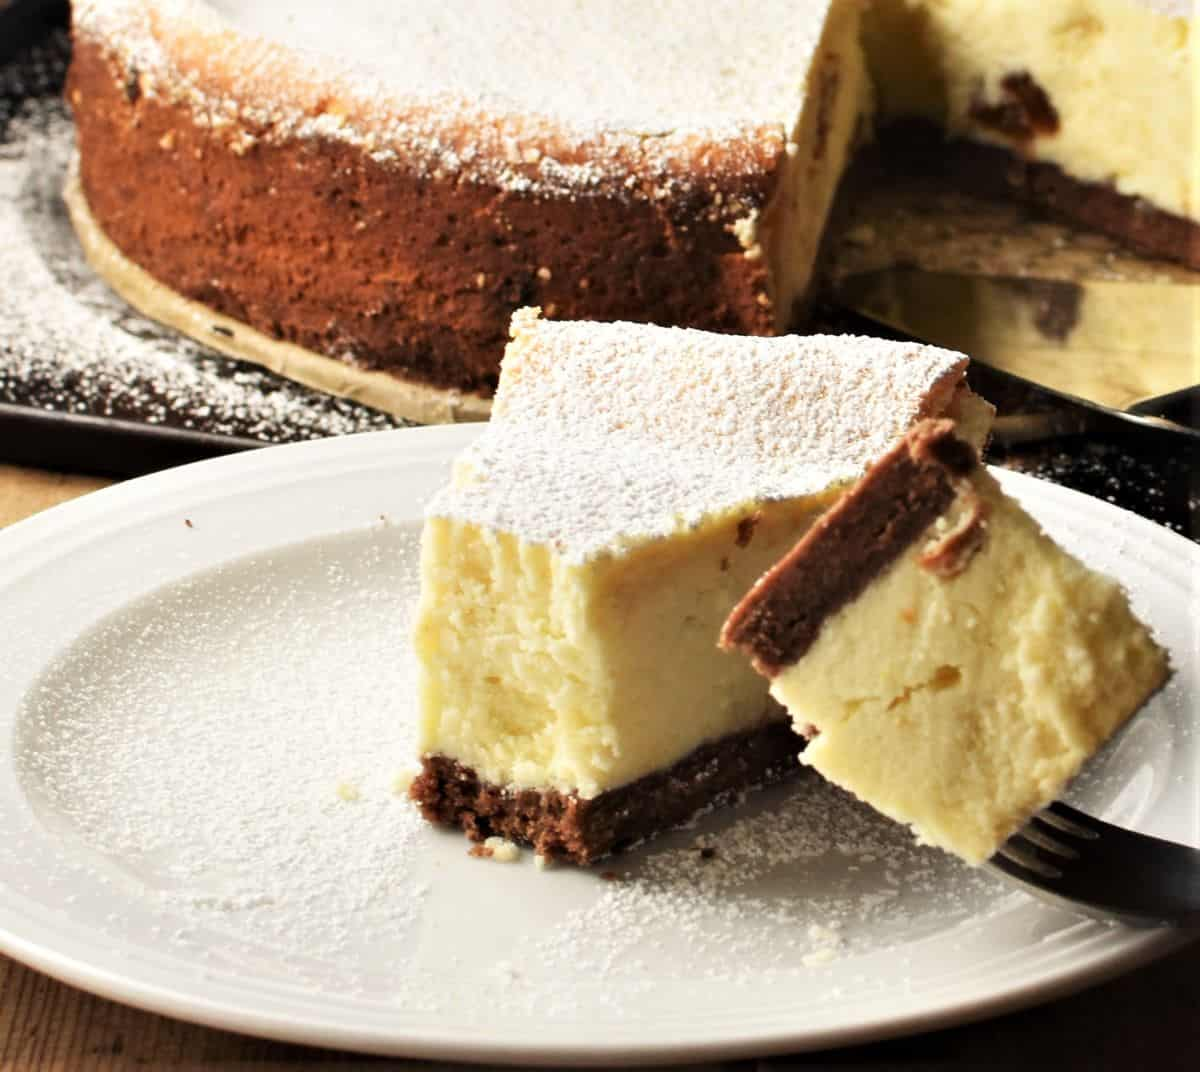 Slice of cheesecake with fork on top of small plate.